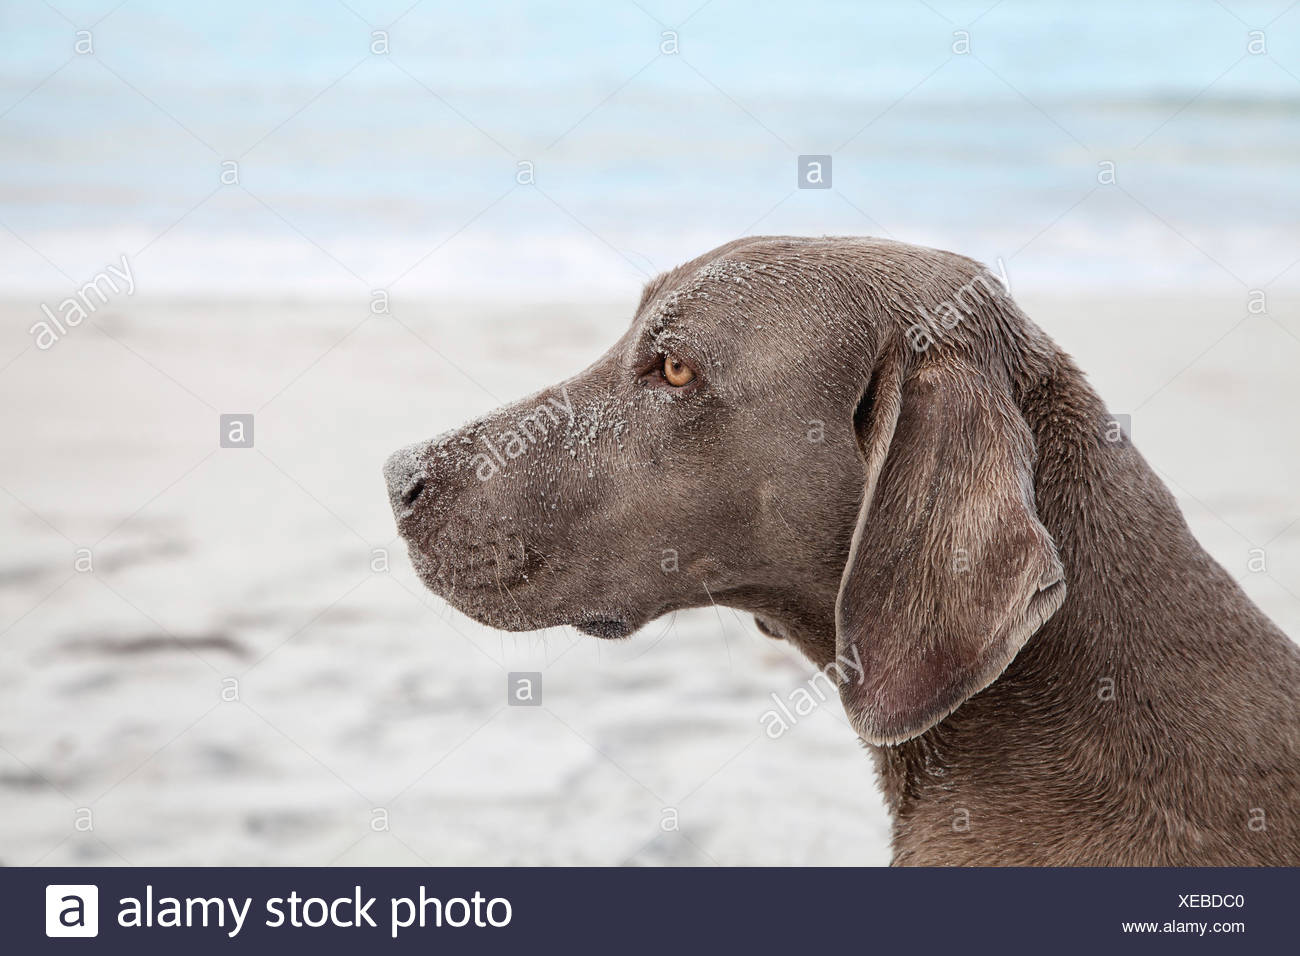 Weimaraner Dog Eyes Stock Photos & Weimaraner Dog Eyes Stock